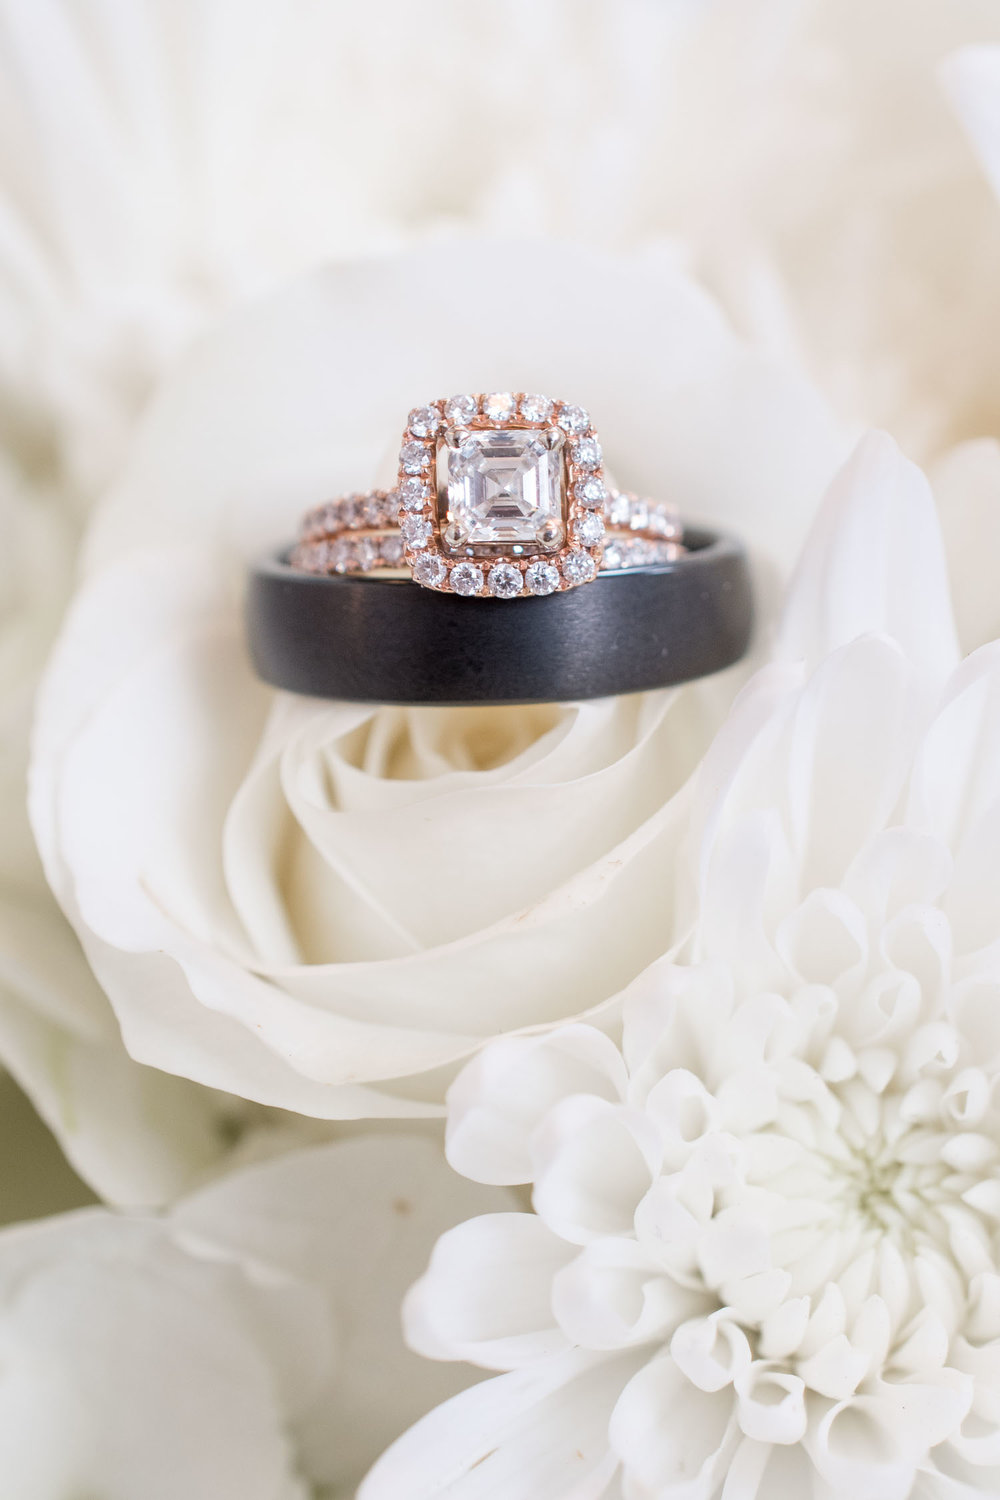 19 wedding ring with rose gold and diamond halo.jpg